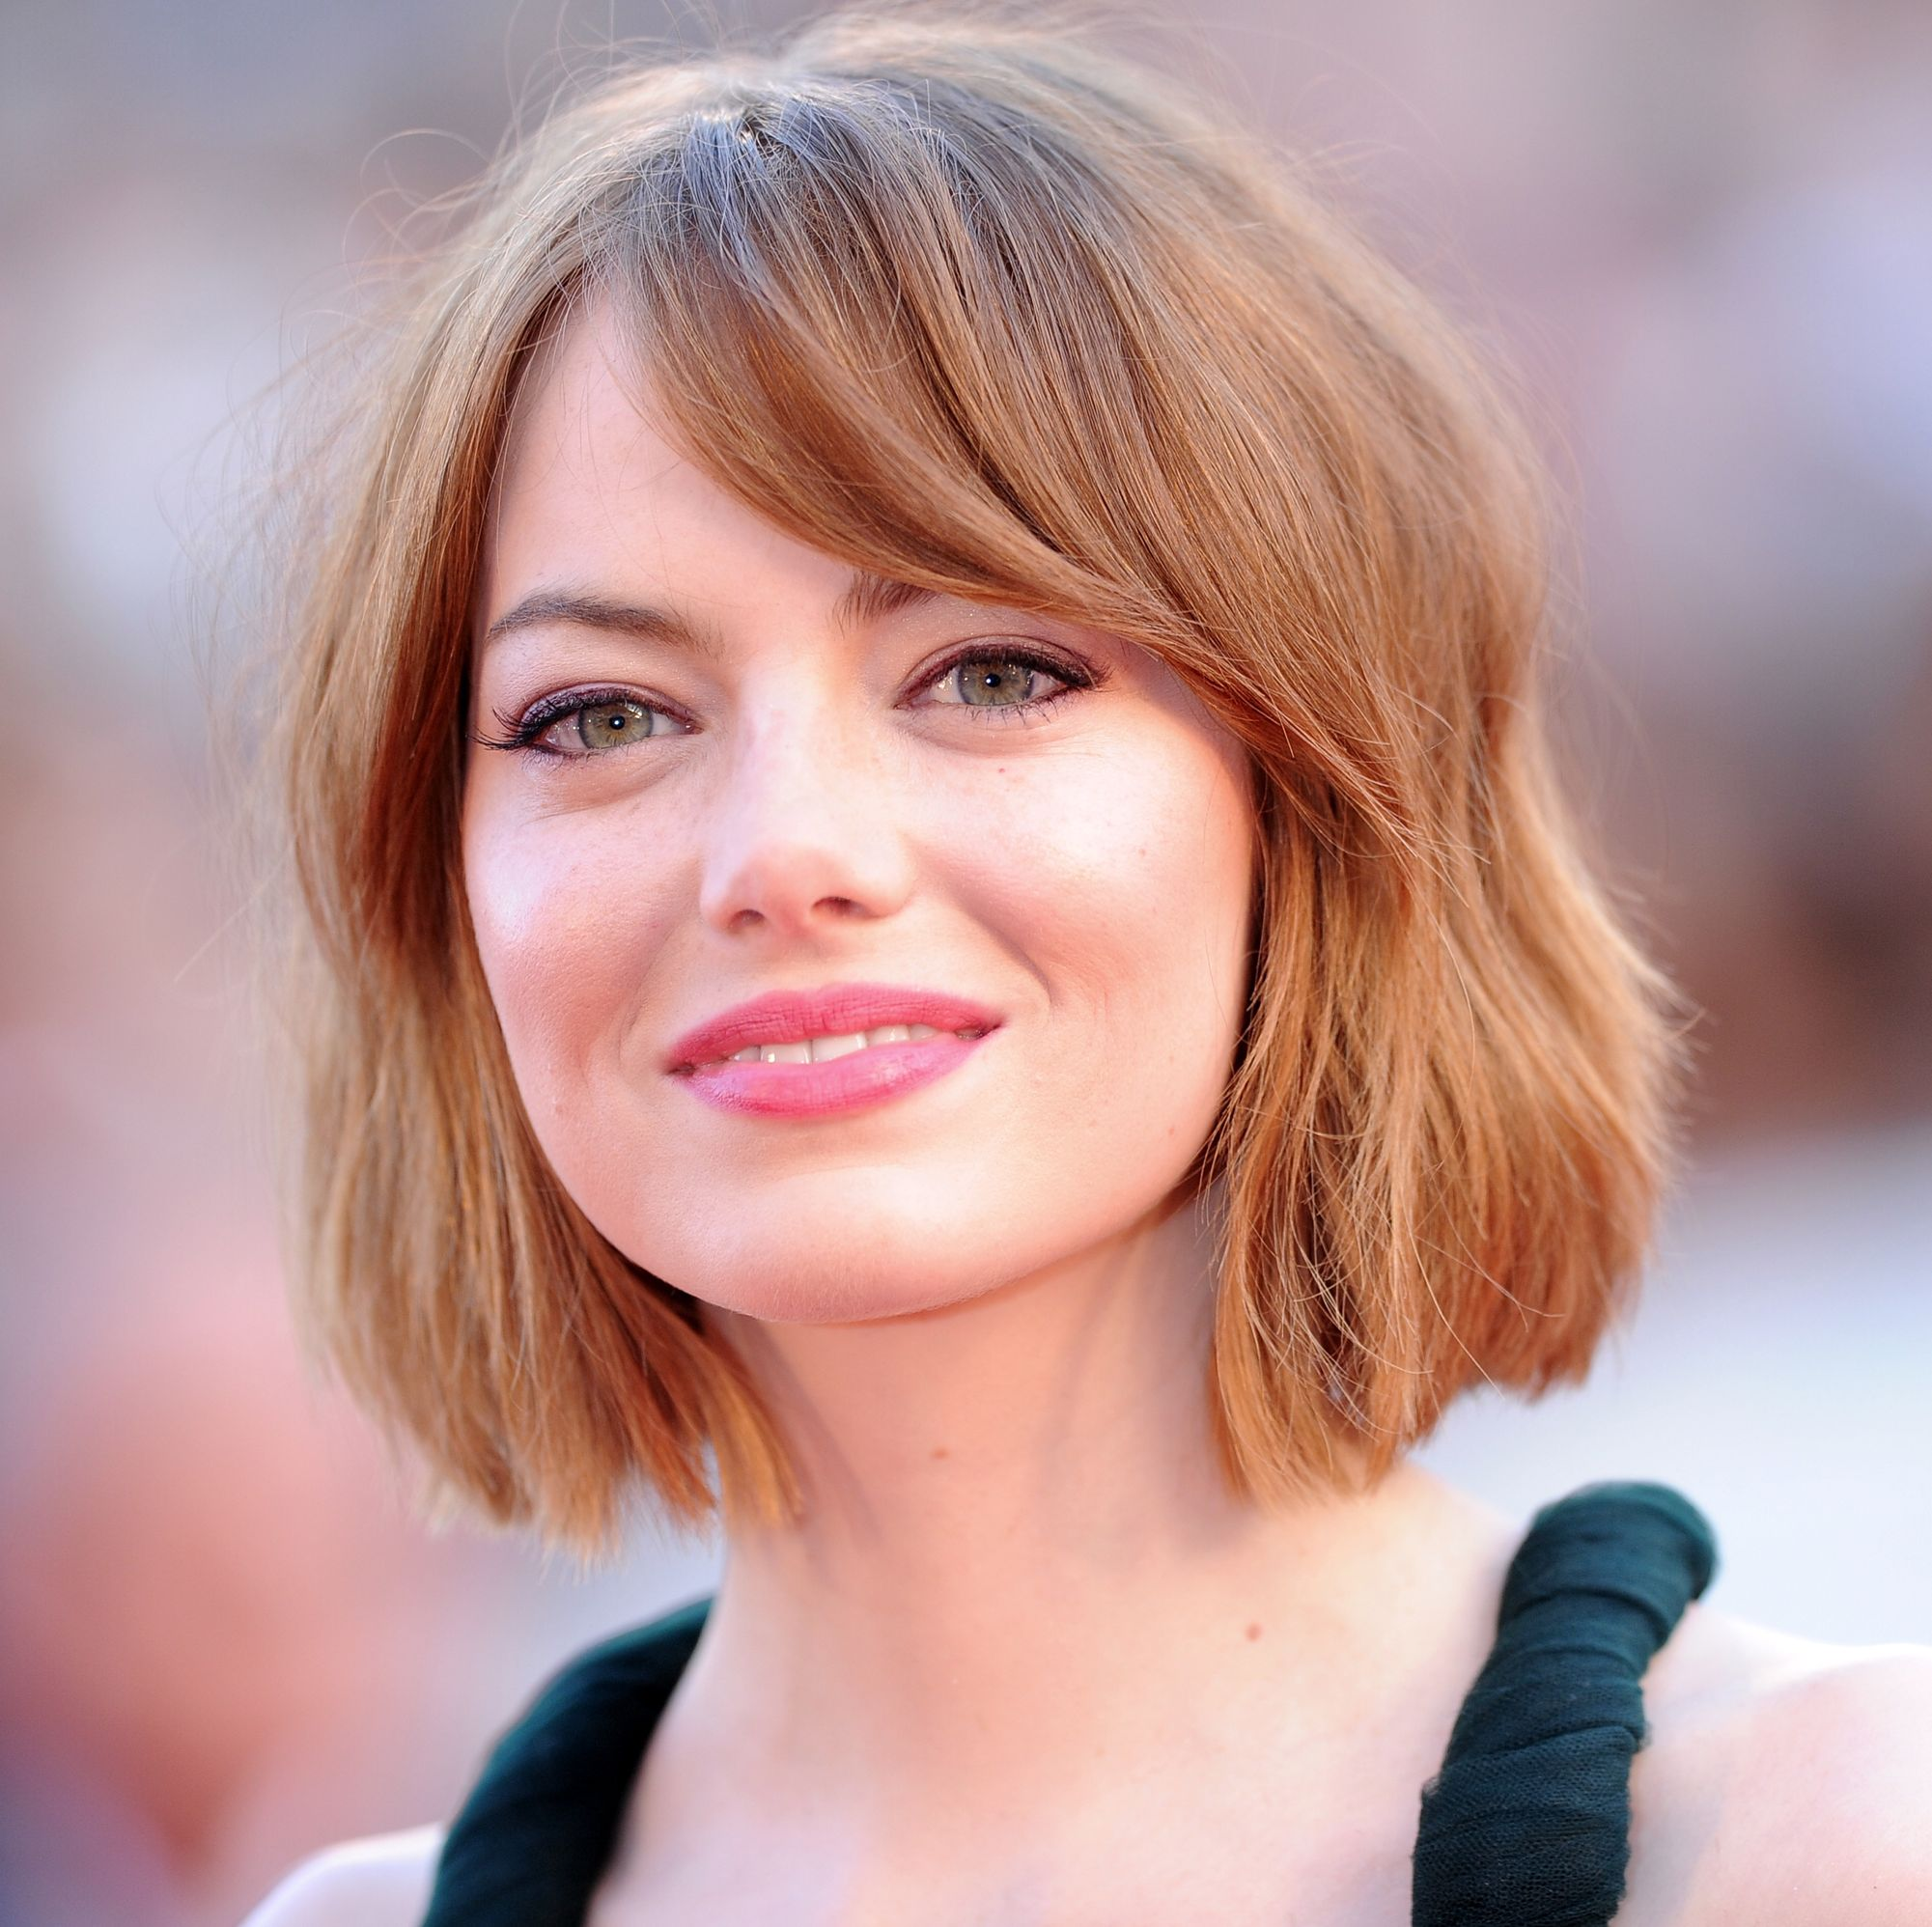 Emma Stone Just Dyed Her Hair Brown and the Pics Are Whoa